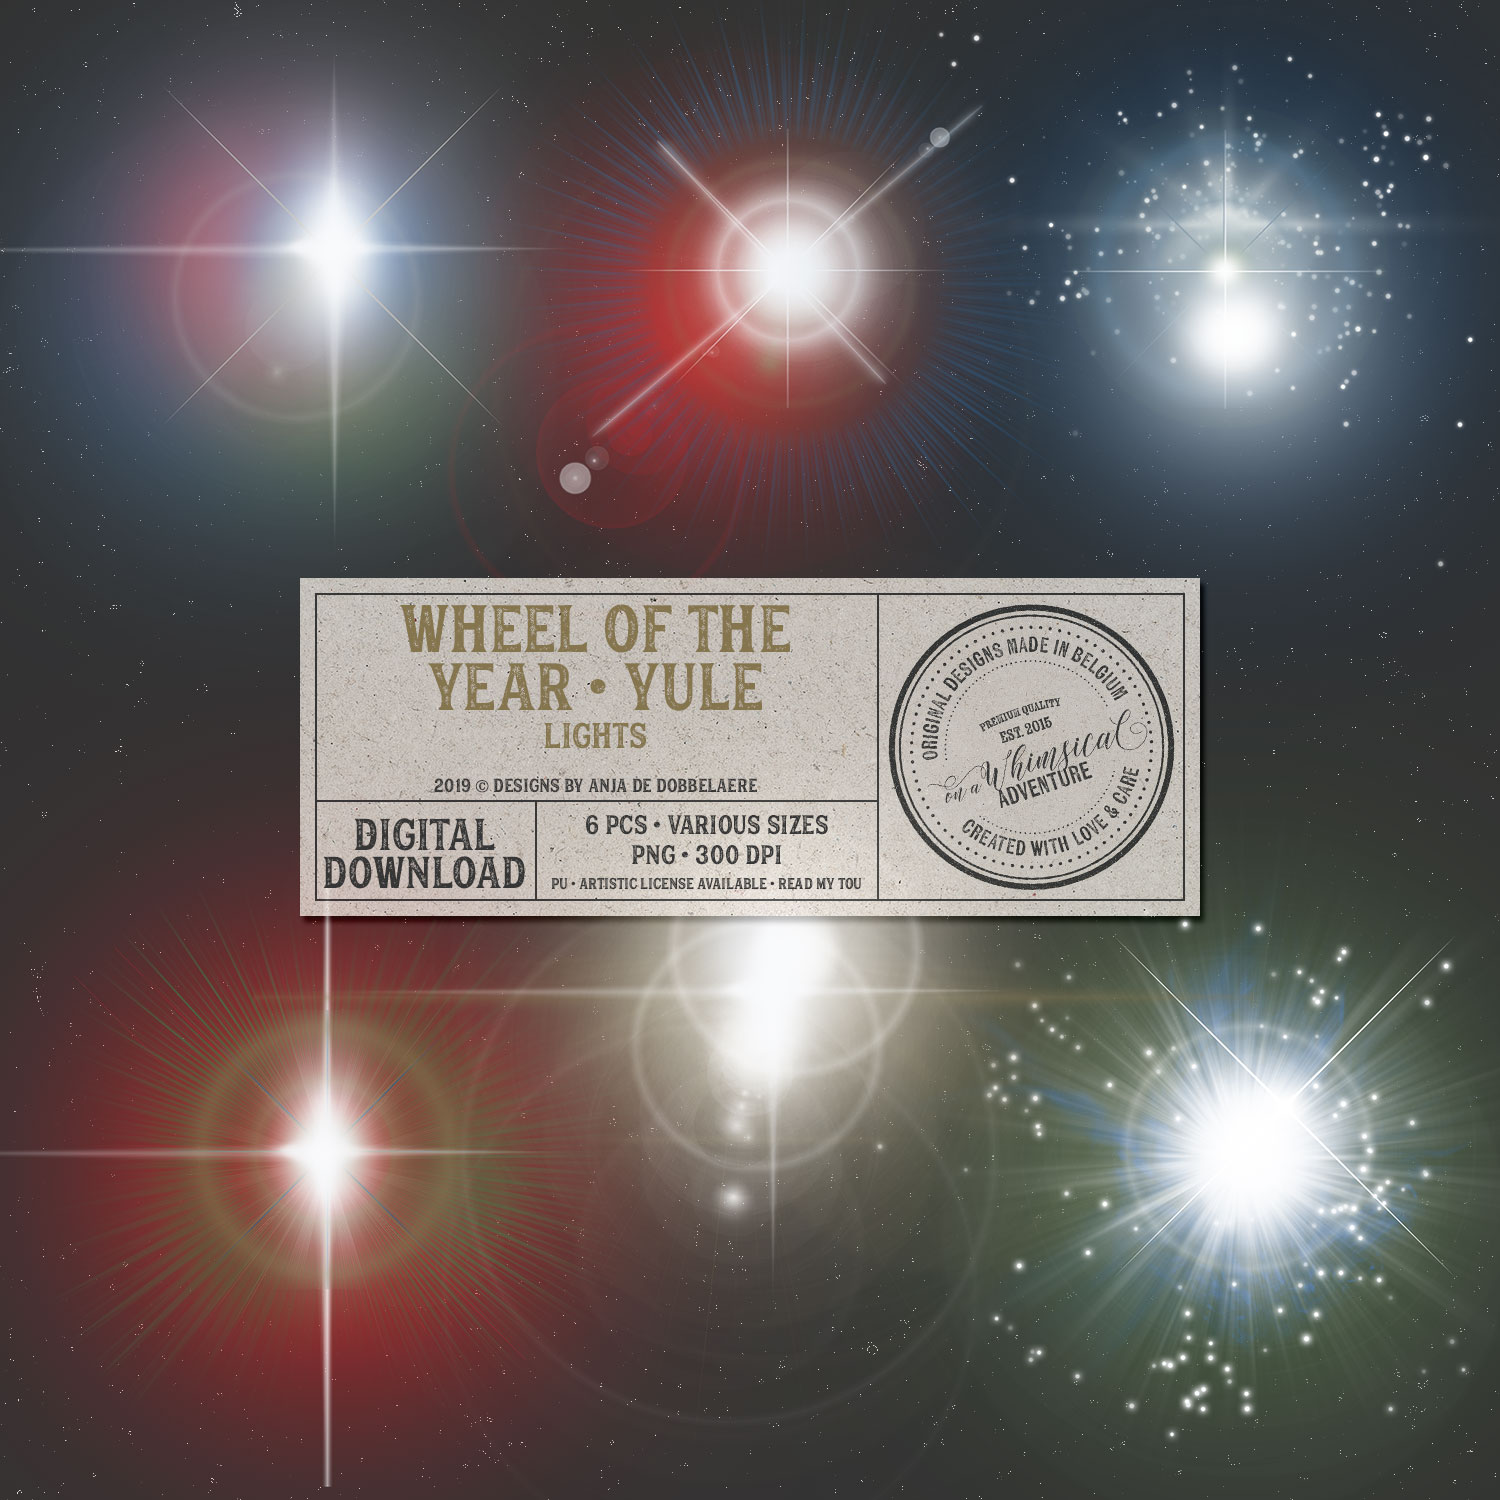 Wheel Of The Year / Yule Lights by On A Whimsical Adventure